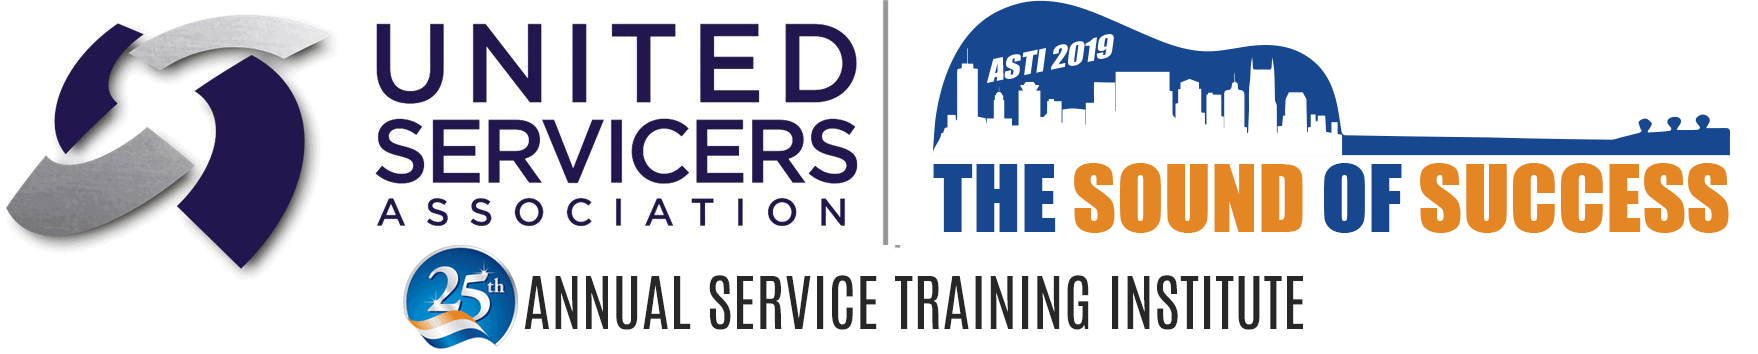 Annual Service Training Institute